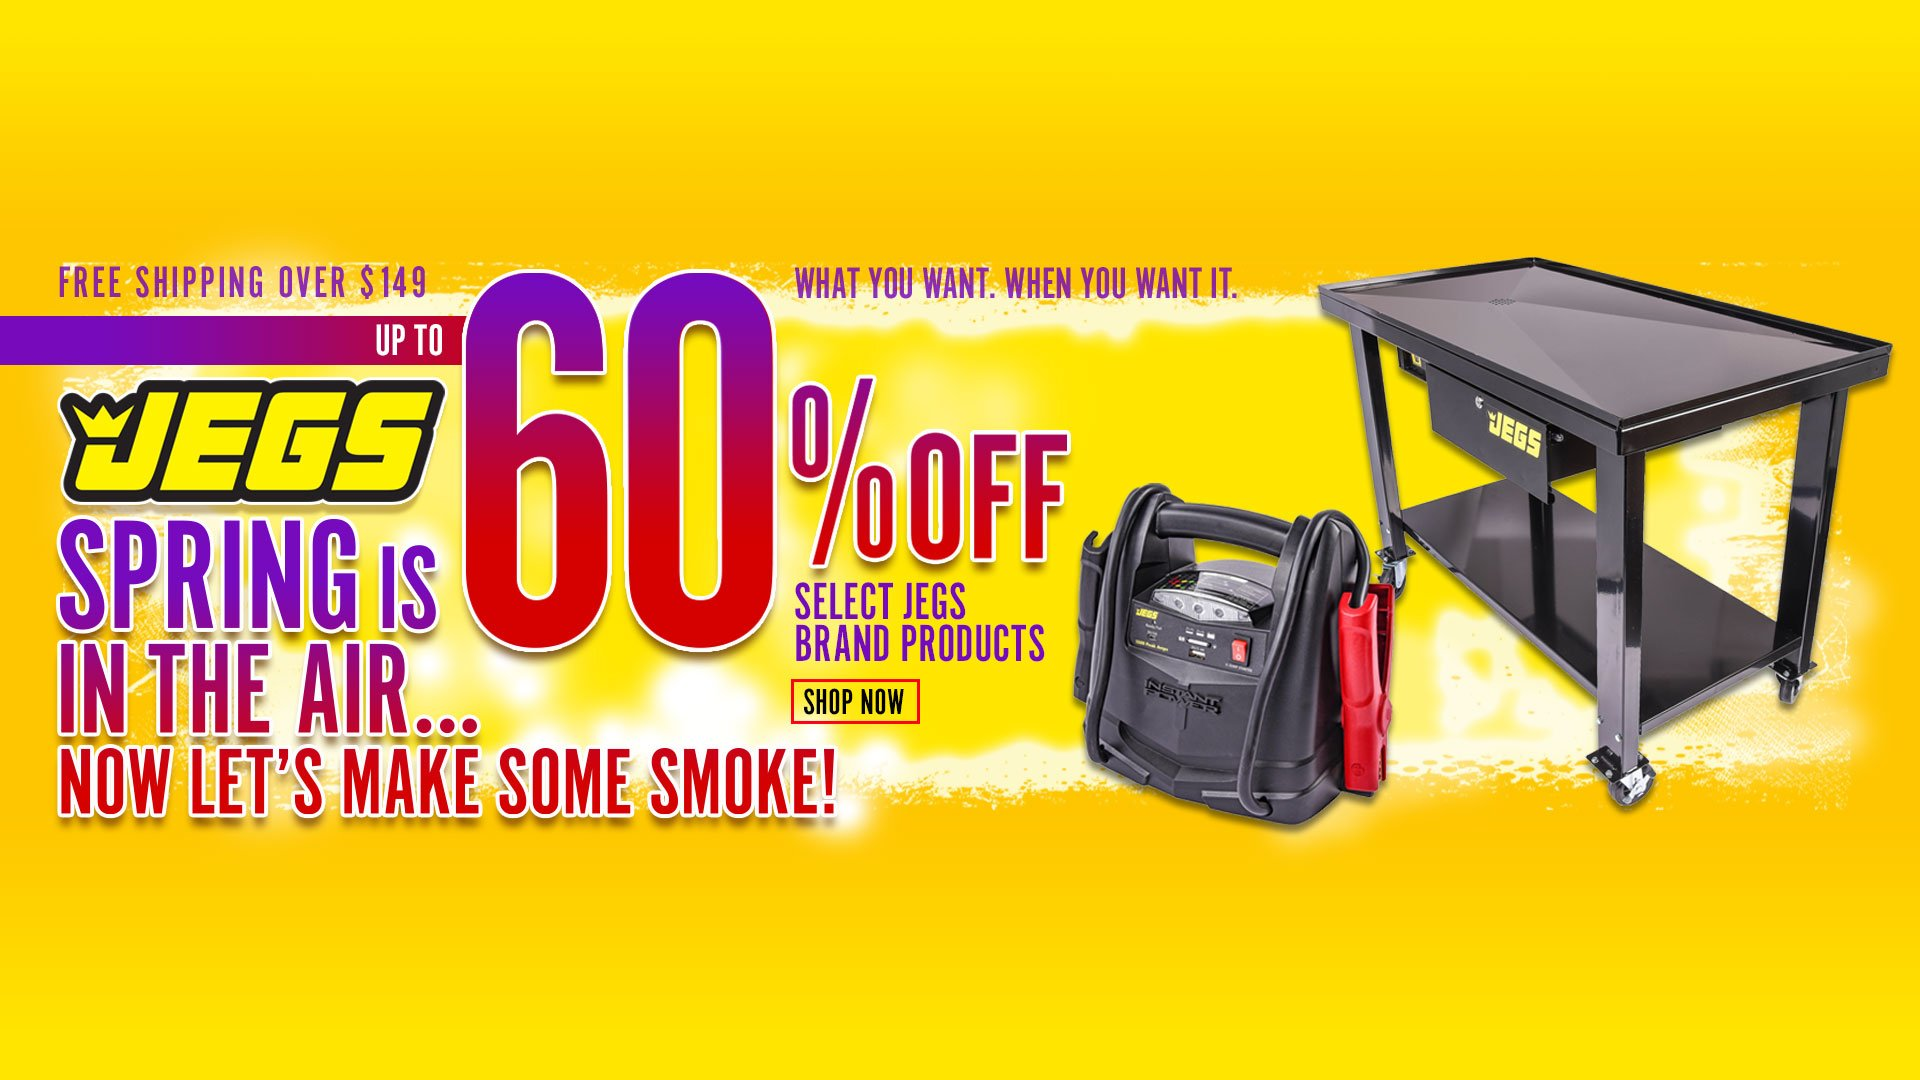 JEGS Spring is in the Air - Up to 60% Off